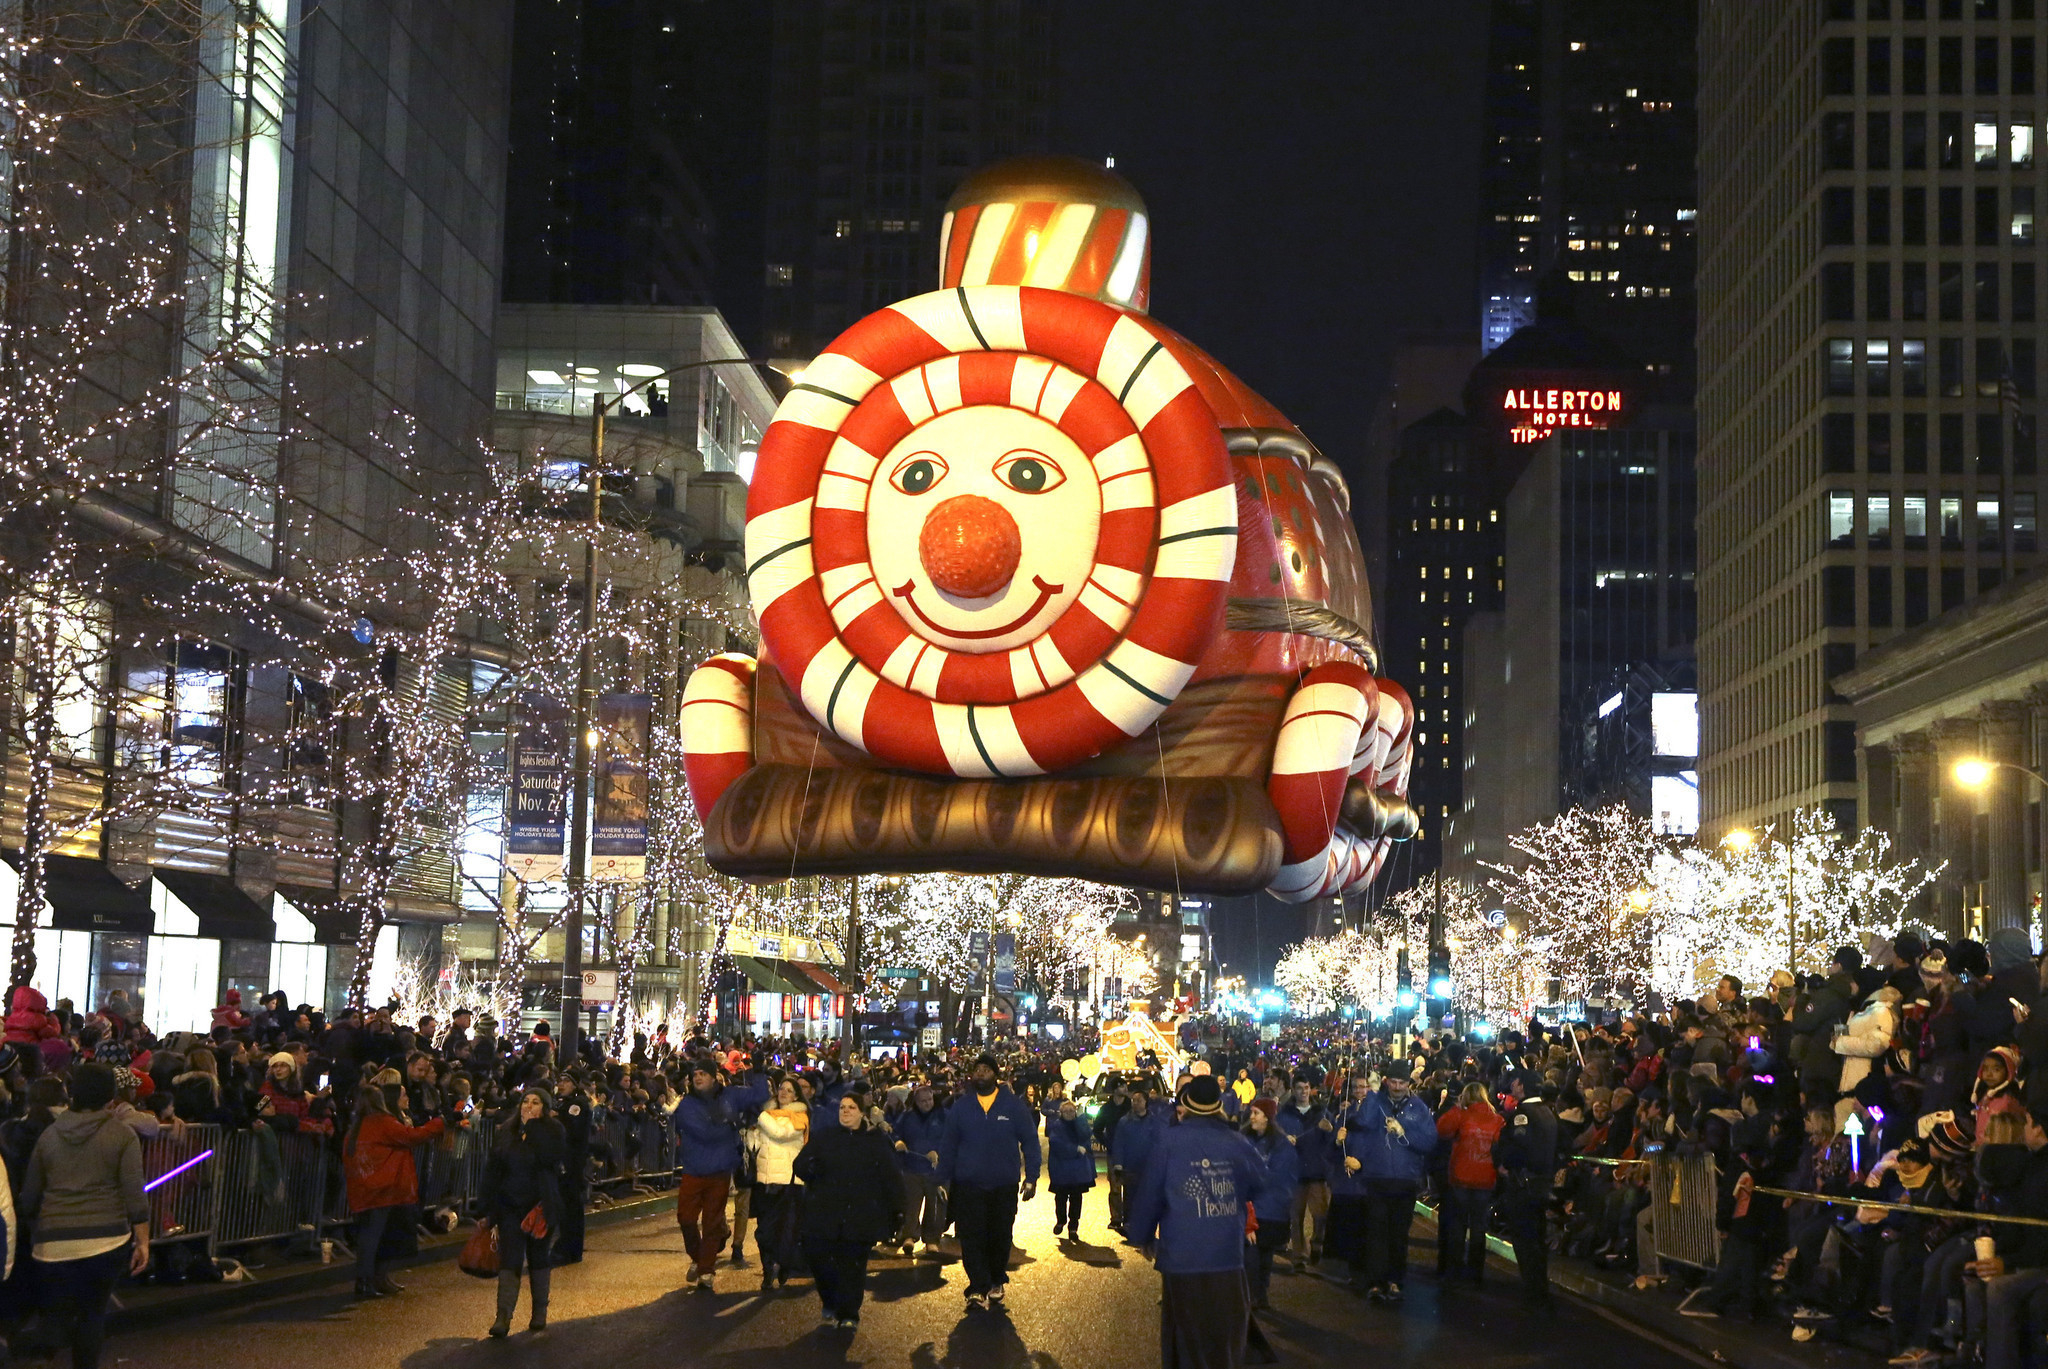 A large balloon is carried southbound on Michigan Avenue, during the Magnificent Mile Lights Festival, on North Michigan Ave., in Chicago, on Saturday, Nov. 22, 2014. (Nuccio DiNuzzo/Chicago Tribune)